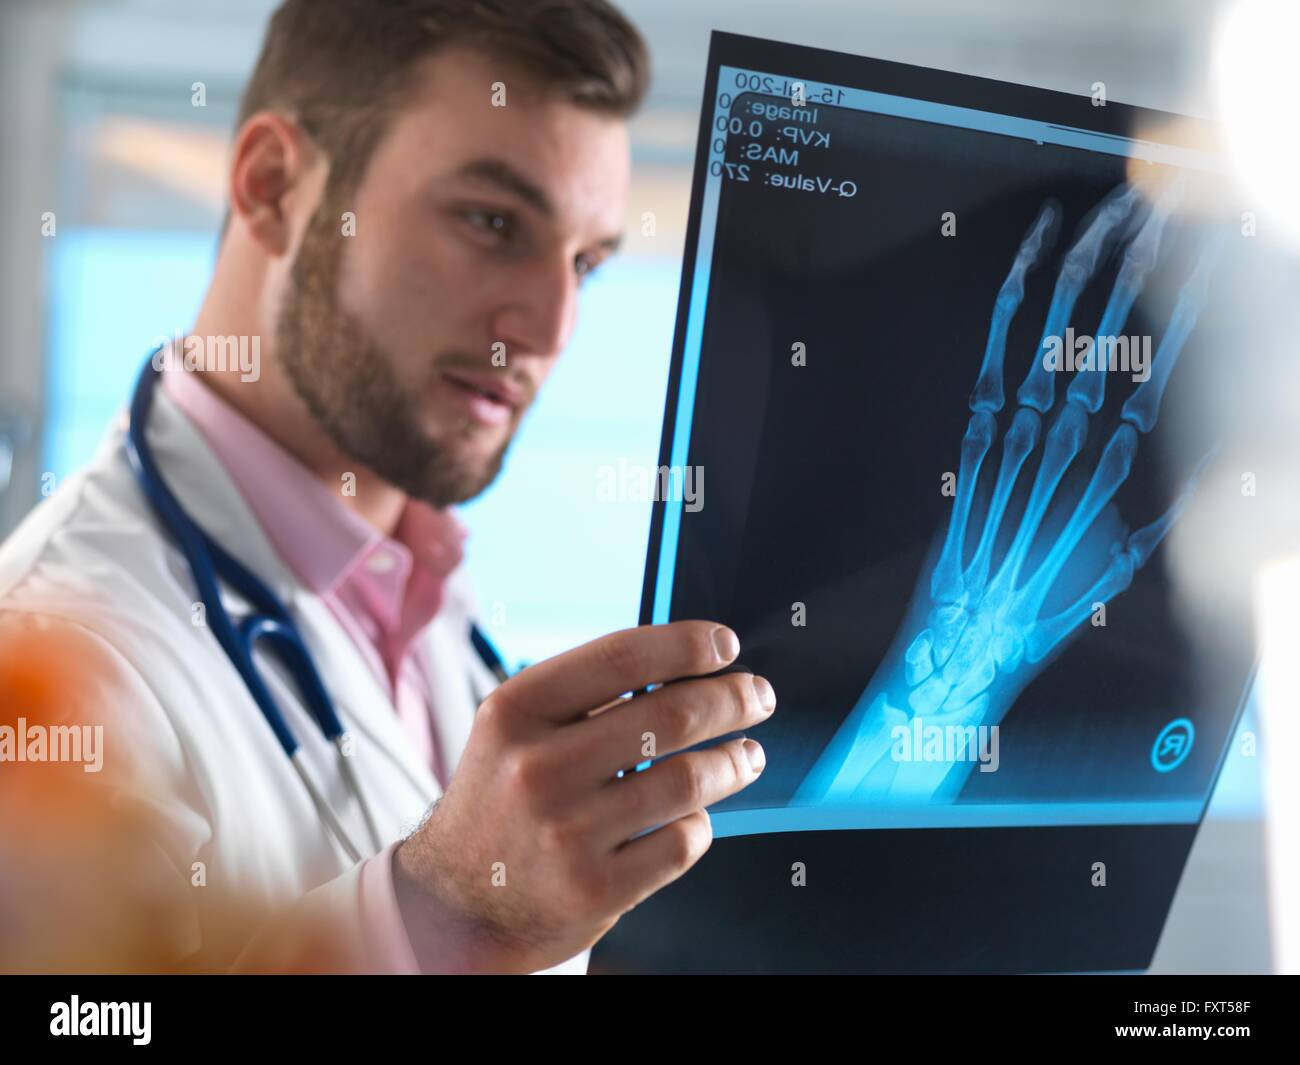 Junior doctor examining x-ray of fractured hand in hospital - Stock Image